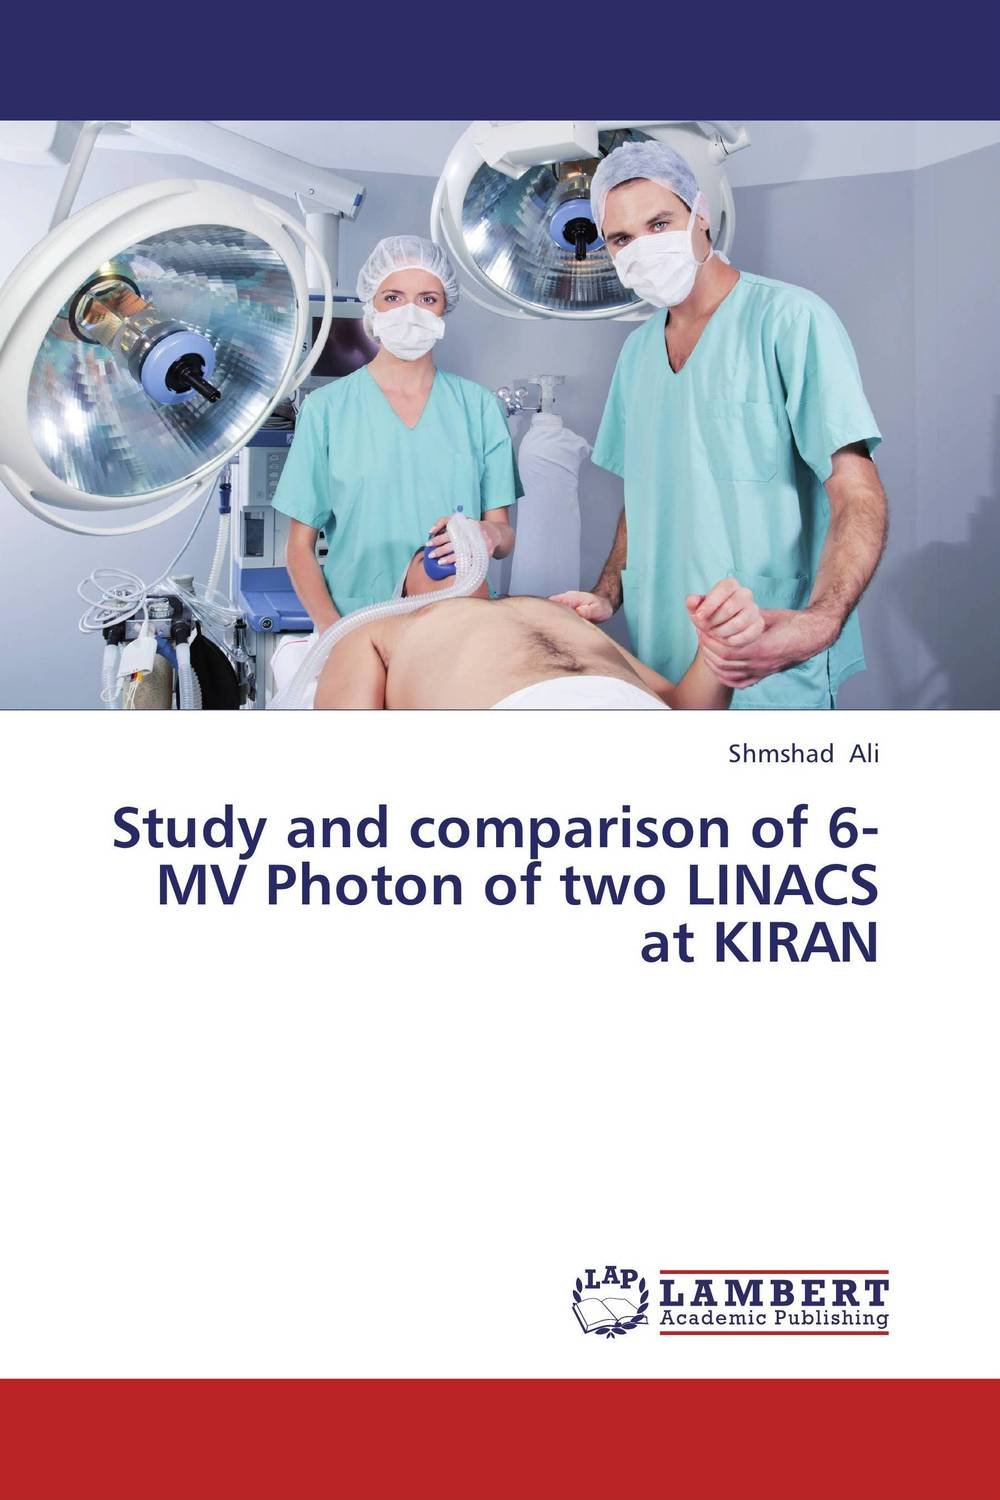 Study and comparison of 6-MV Photon of two LINACS at KIRAN comparison between sdp in cloud paas and traditional hosting platform